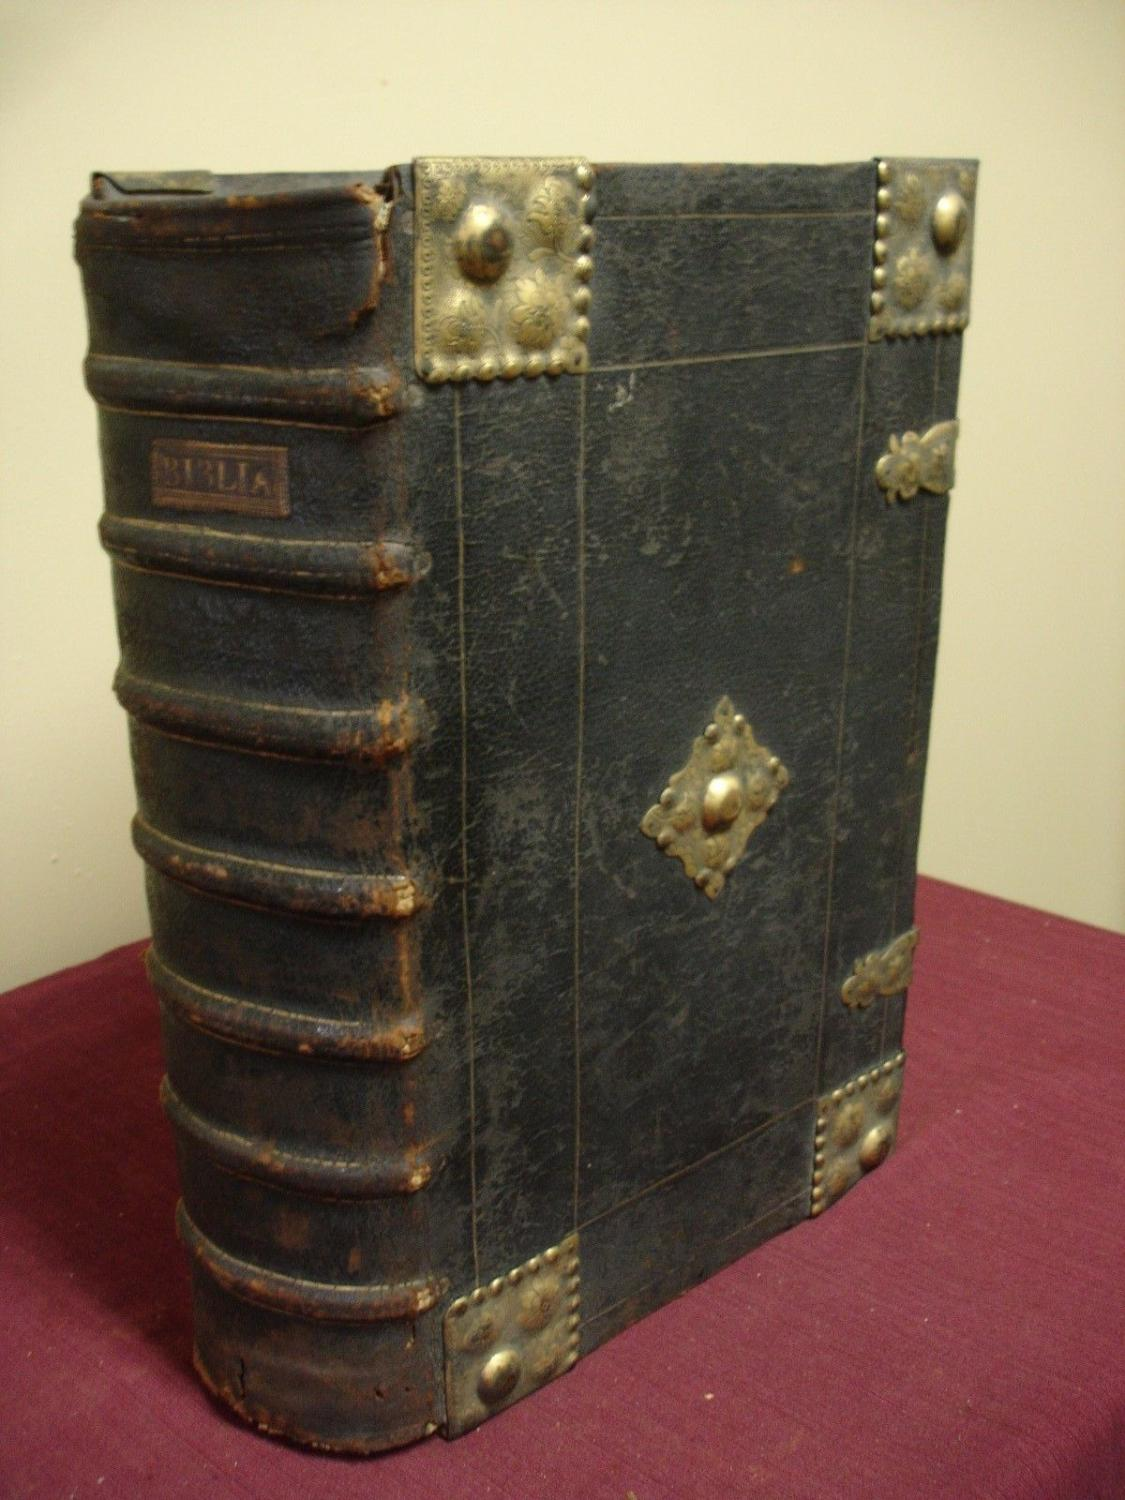 German Bible 1665 with Maps and Handwritten Notes